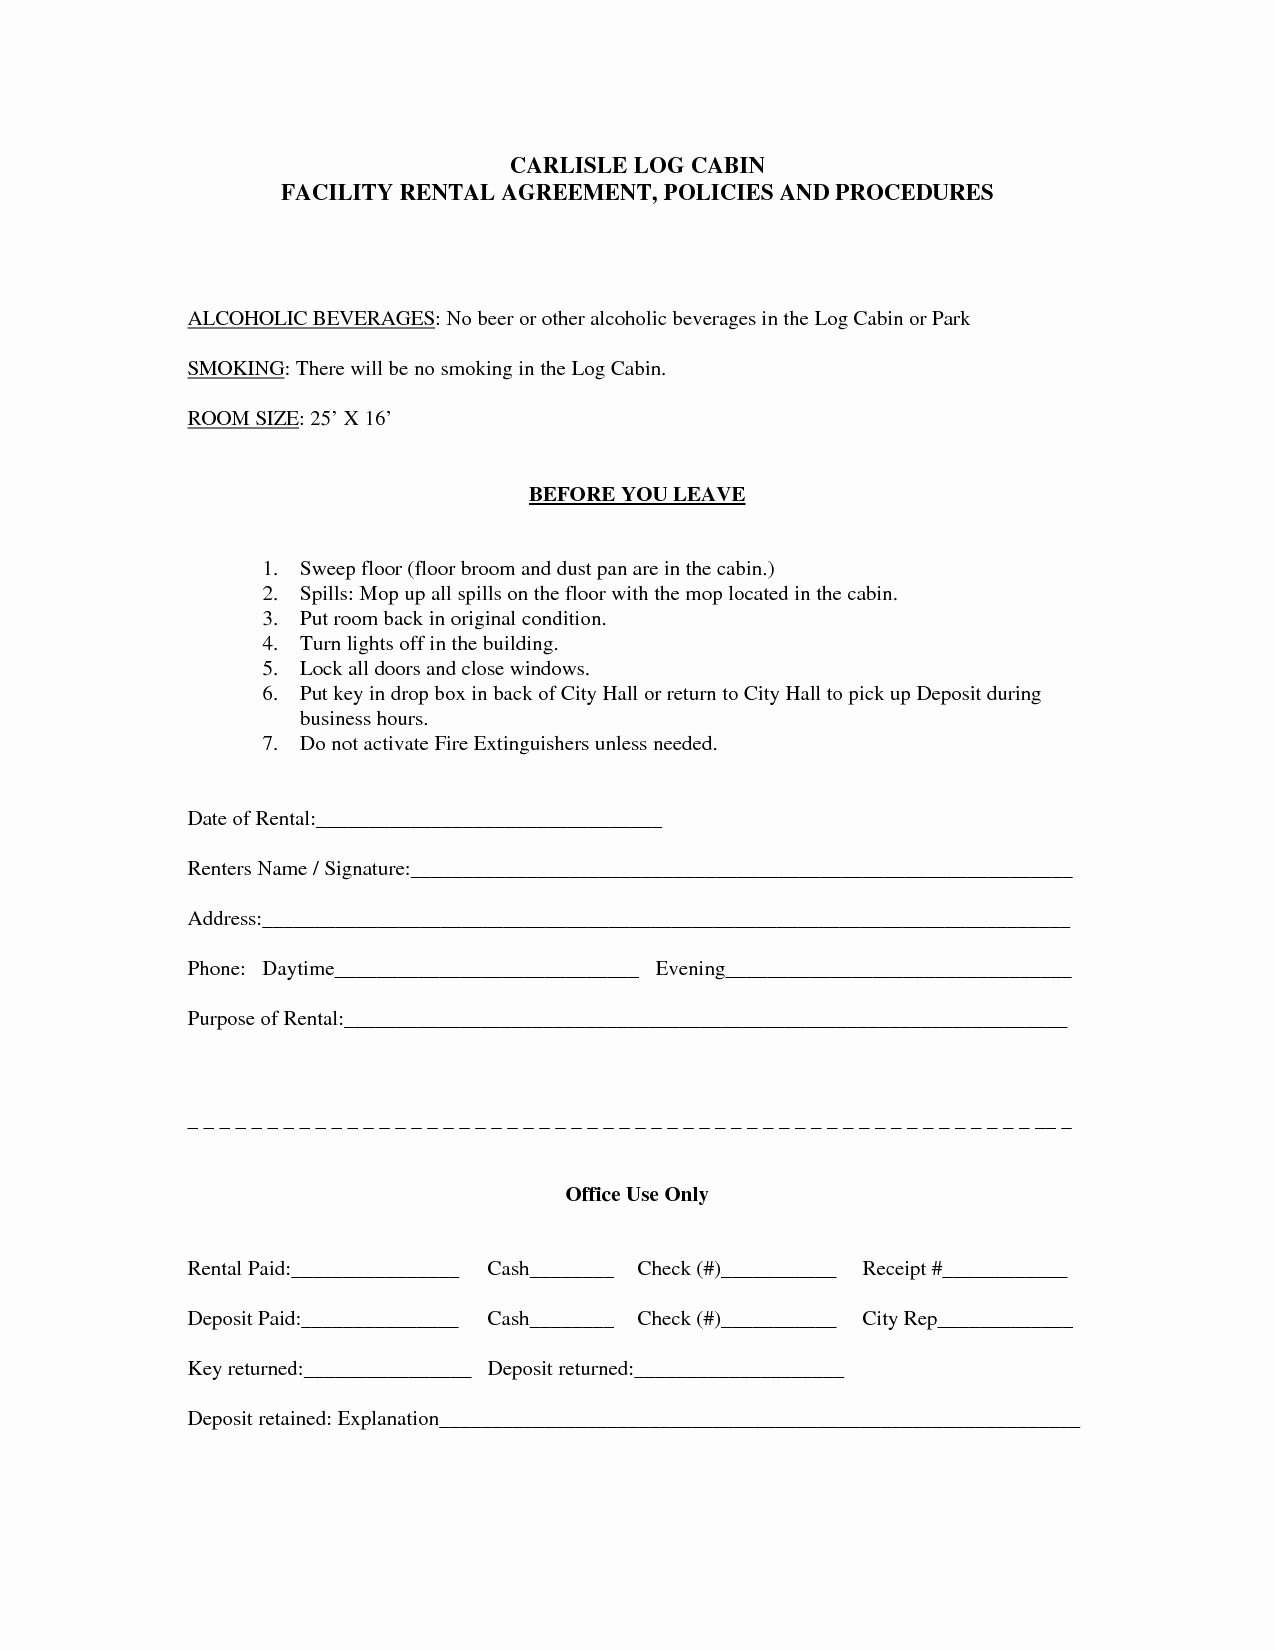 Facility Rental Agreement Template Inspirational Rent Lease form Bamboodownunder